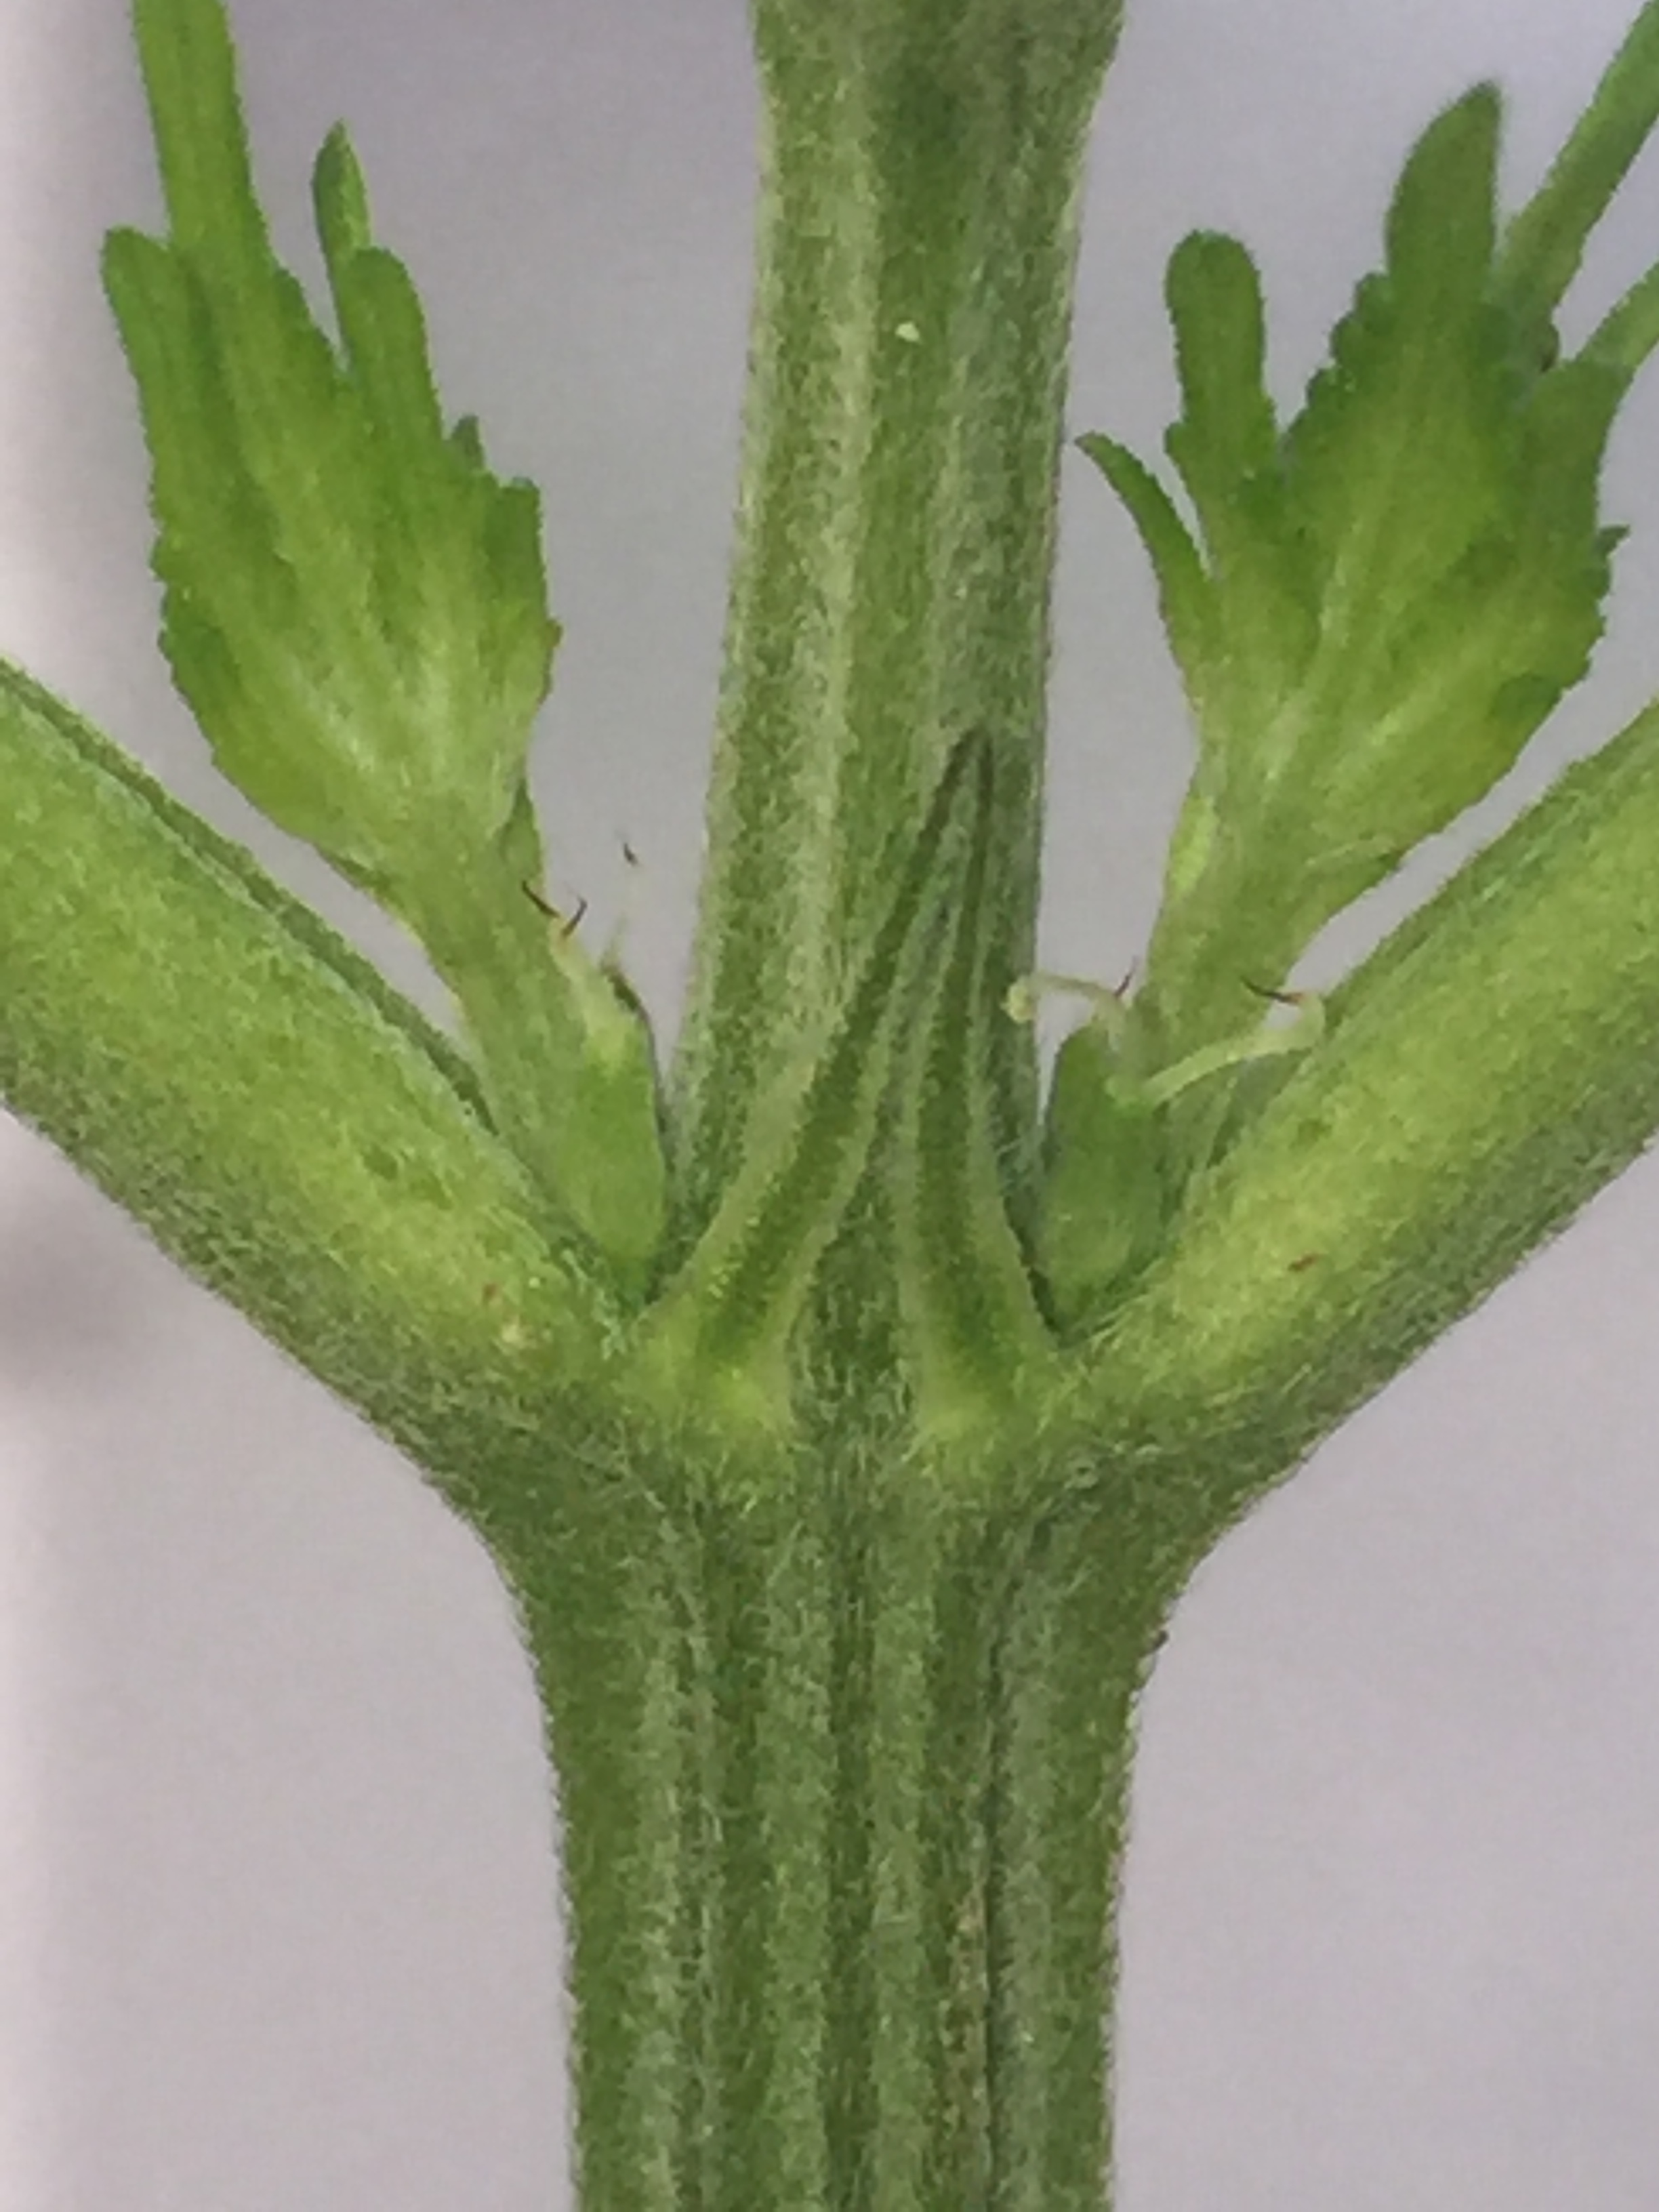 Female Plant  (Photo Courtesy of the Cannabis Horticultural Association)